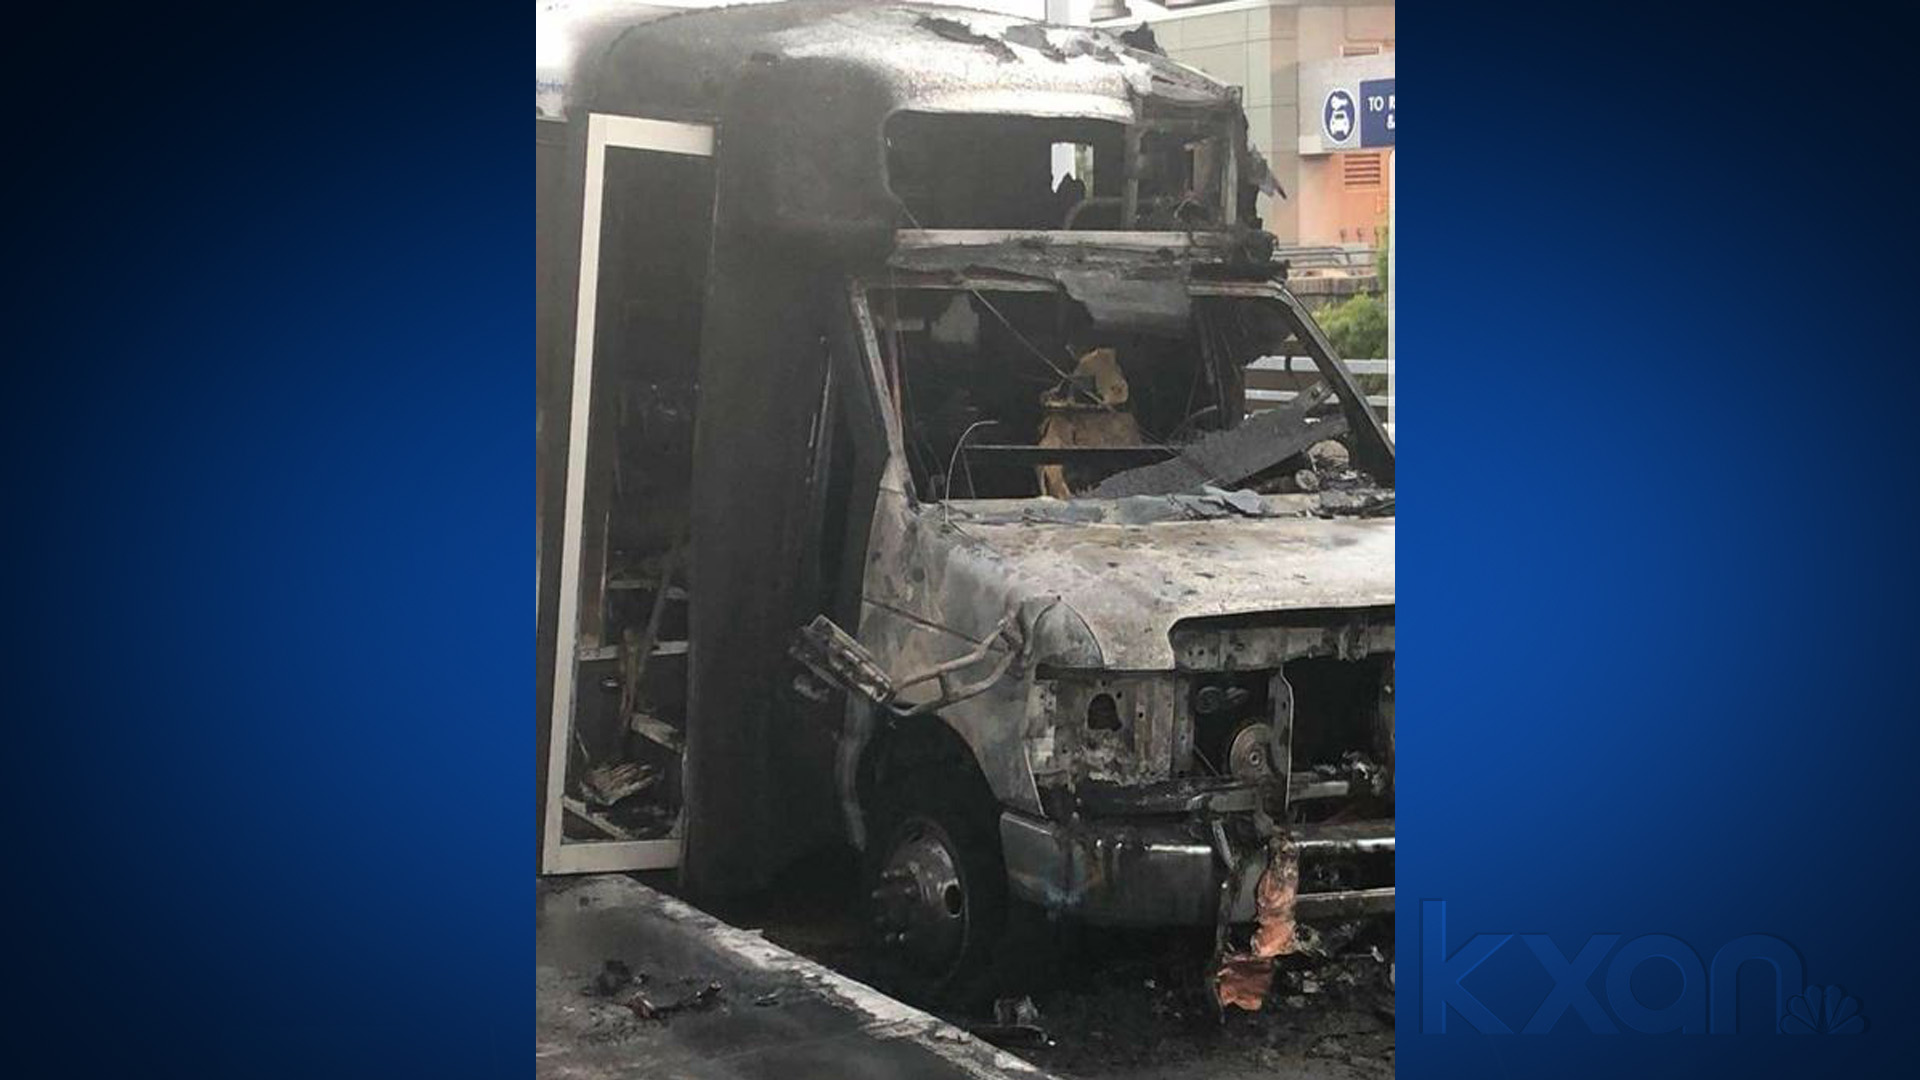 The charred remains of a shuttle bus that caught fire at Austin airport